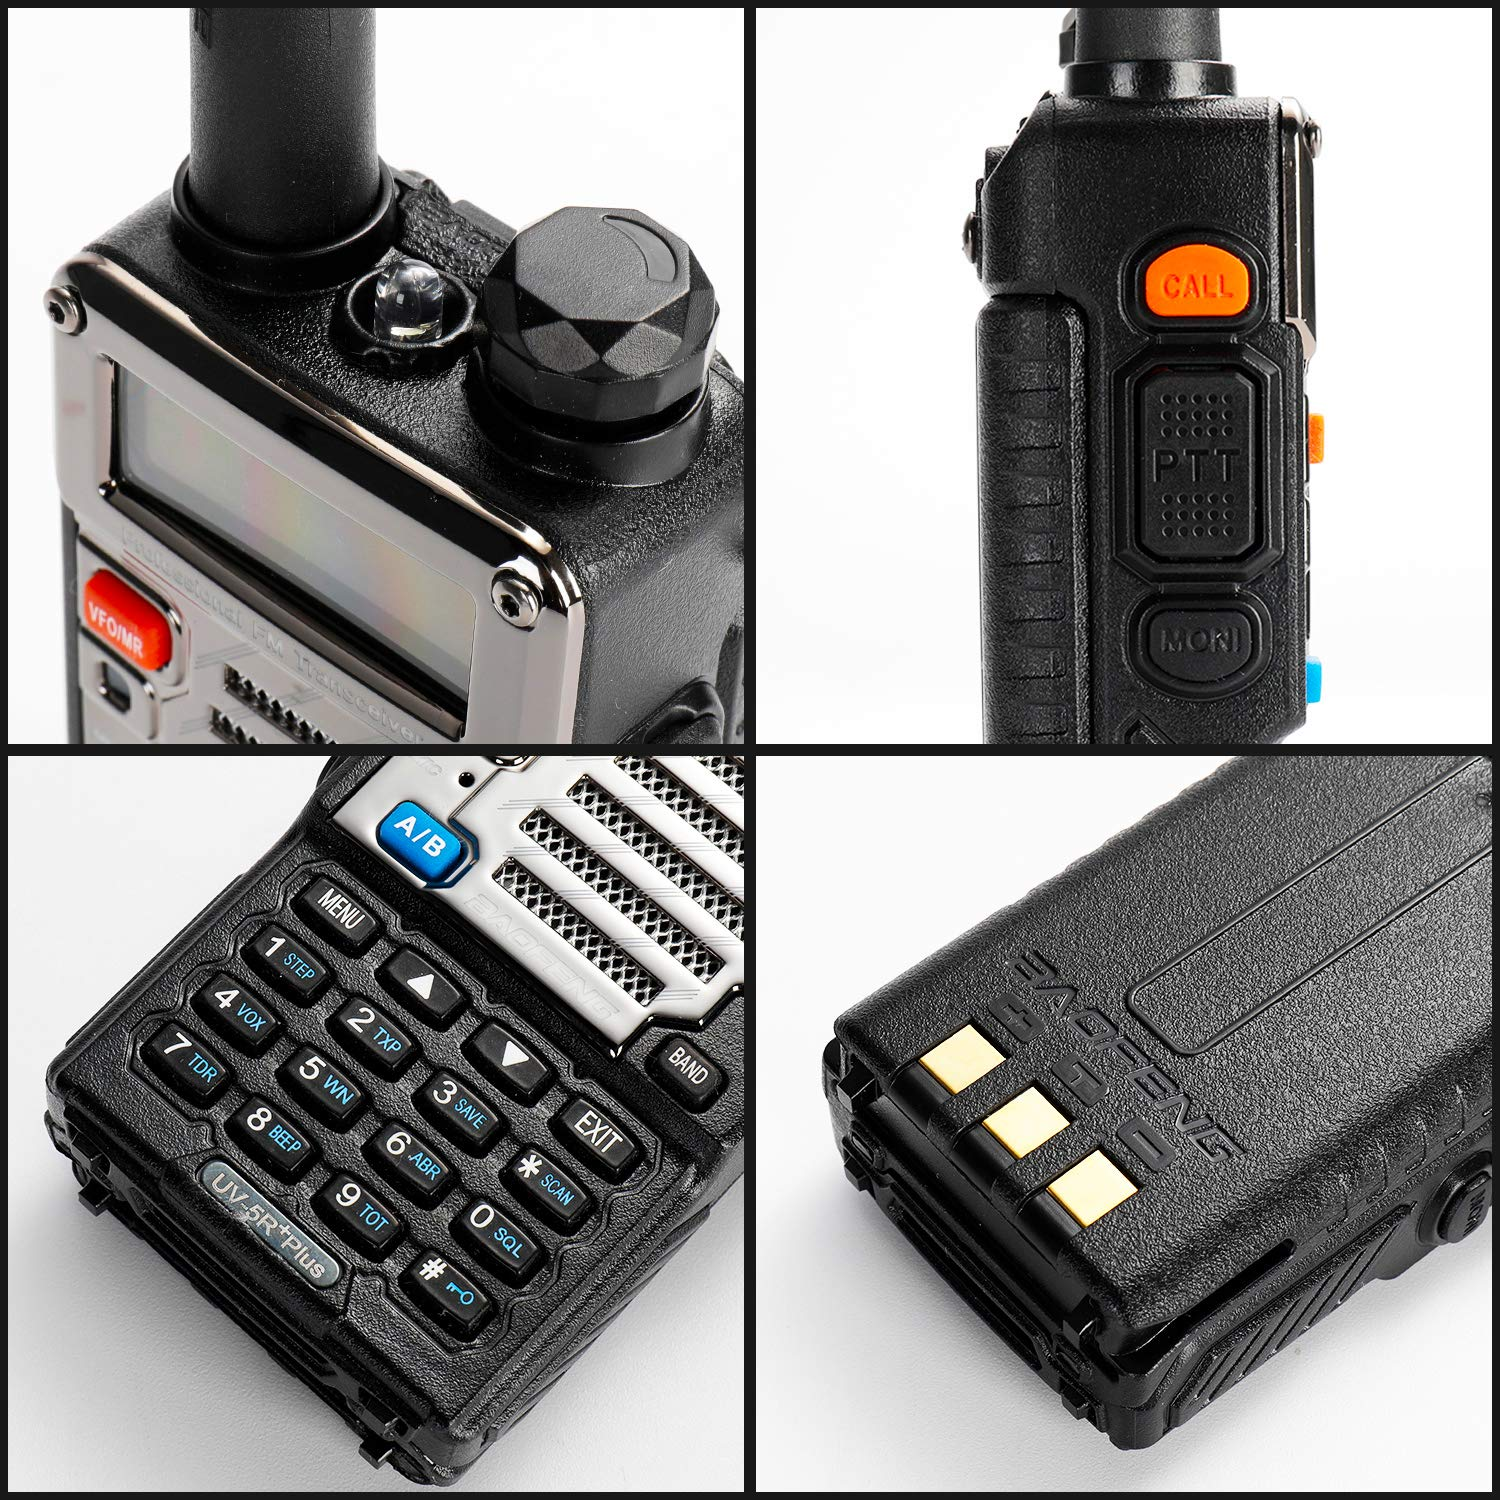 1 Baofeng Programming Cable 5 Pack BaoFeng UV-5R Plus UHF VHF Dual-Band Two Way Radio Black Support Win7, Win10